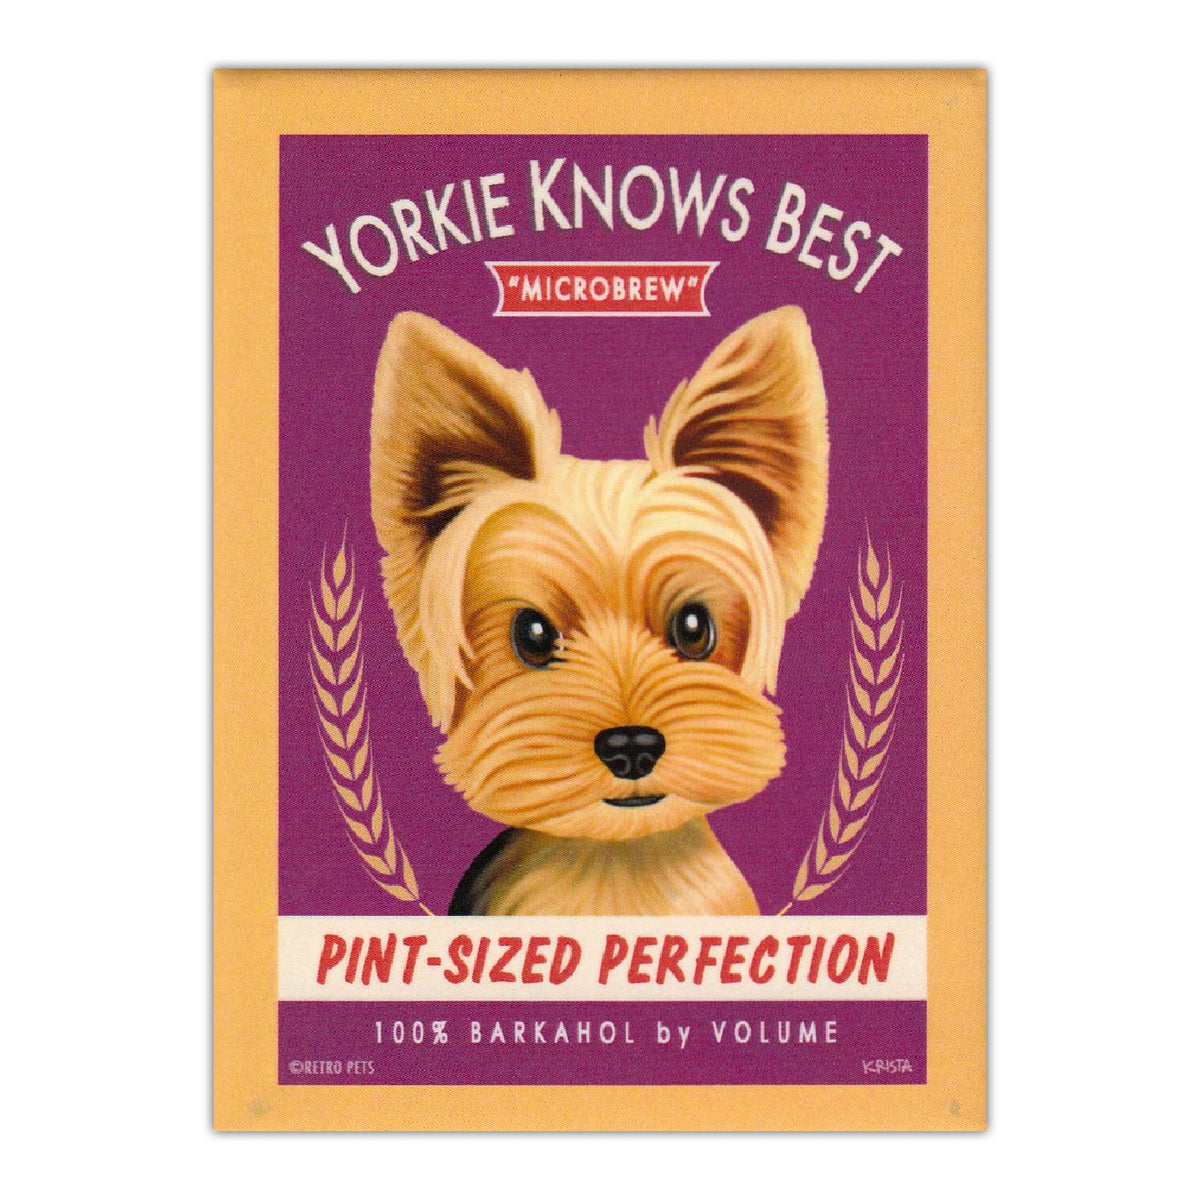 Refrigerator Magnet Yorkie Knows Best Microbrew Retro Advertisement Crazy Novelty Guy